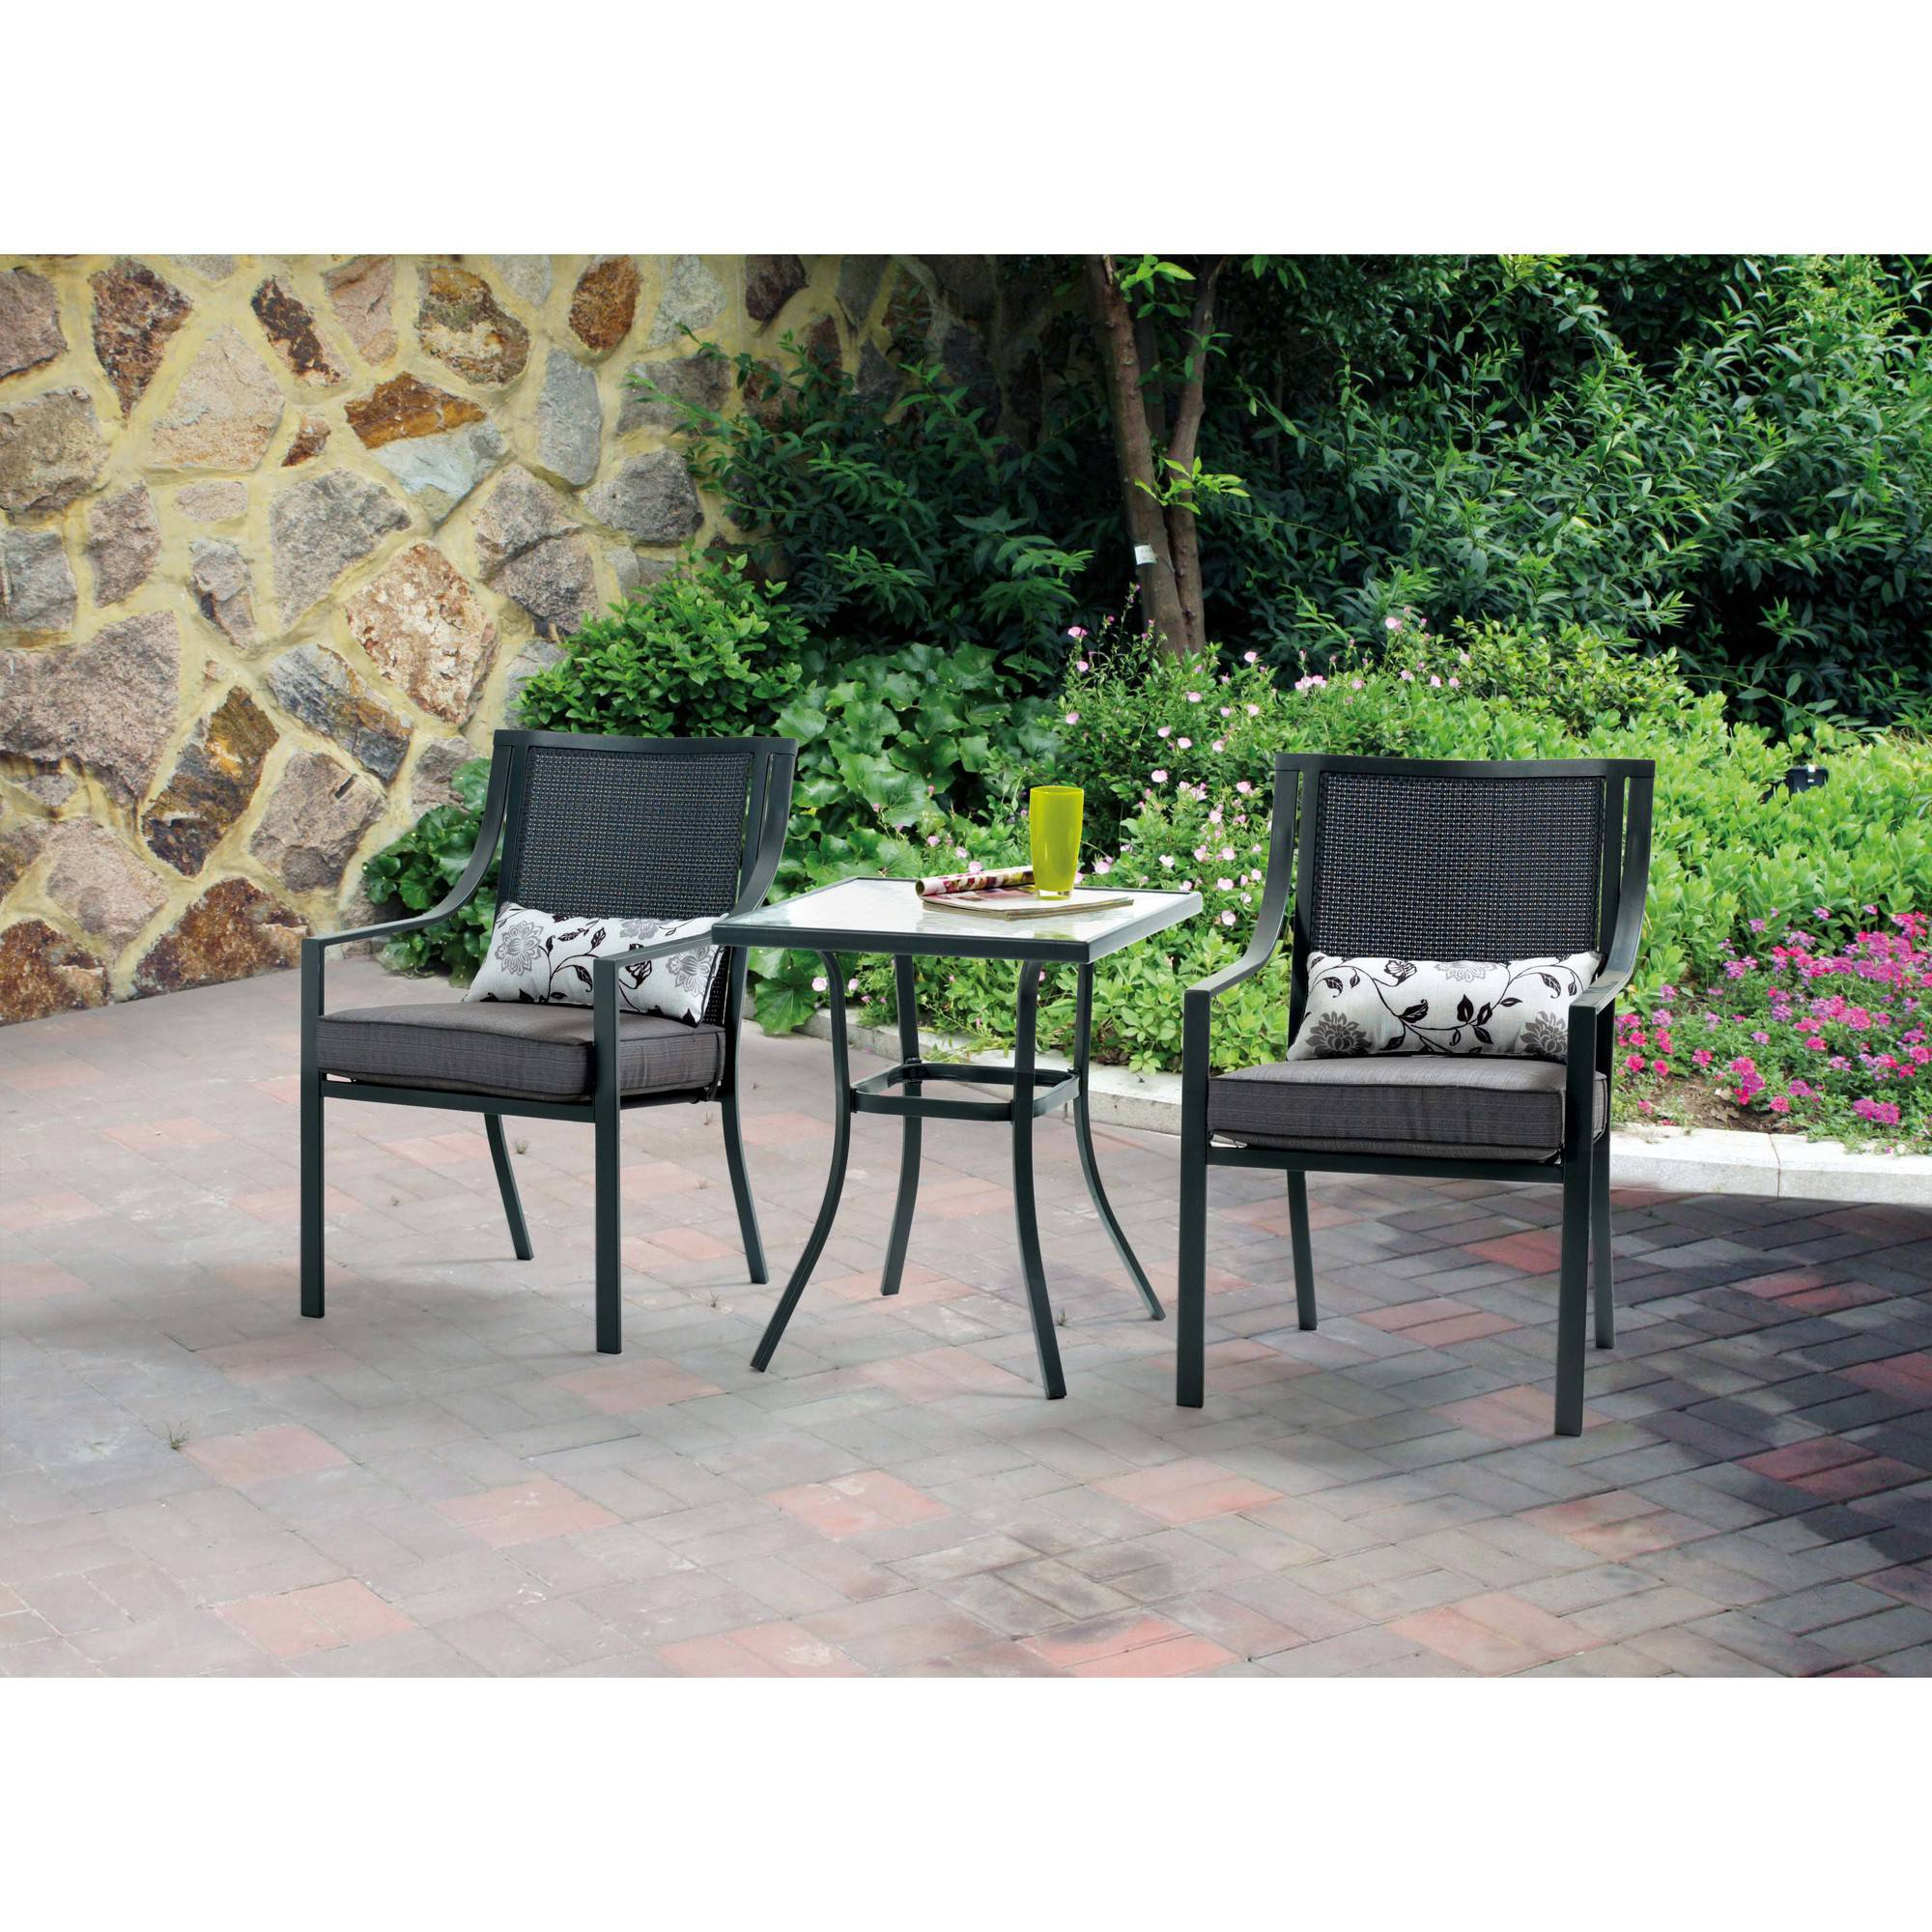 Mainstays Alexandra Square 3-Piece Outdoor Bistro Set - Walmart